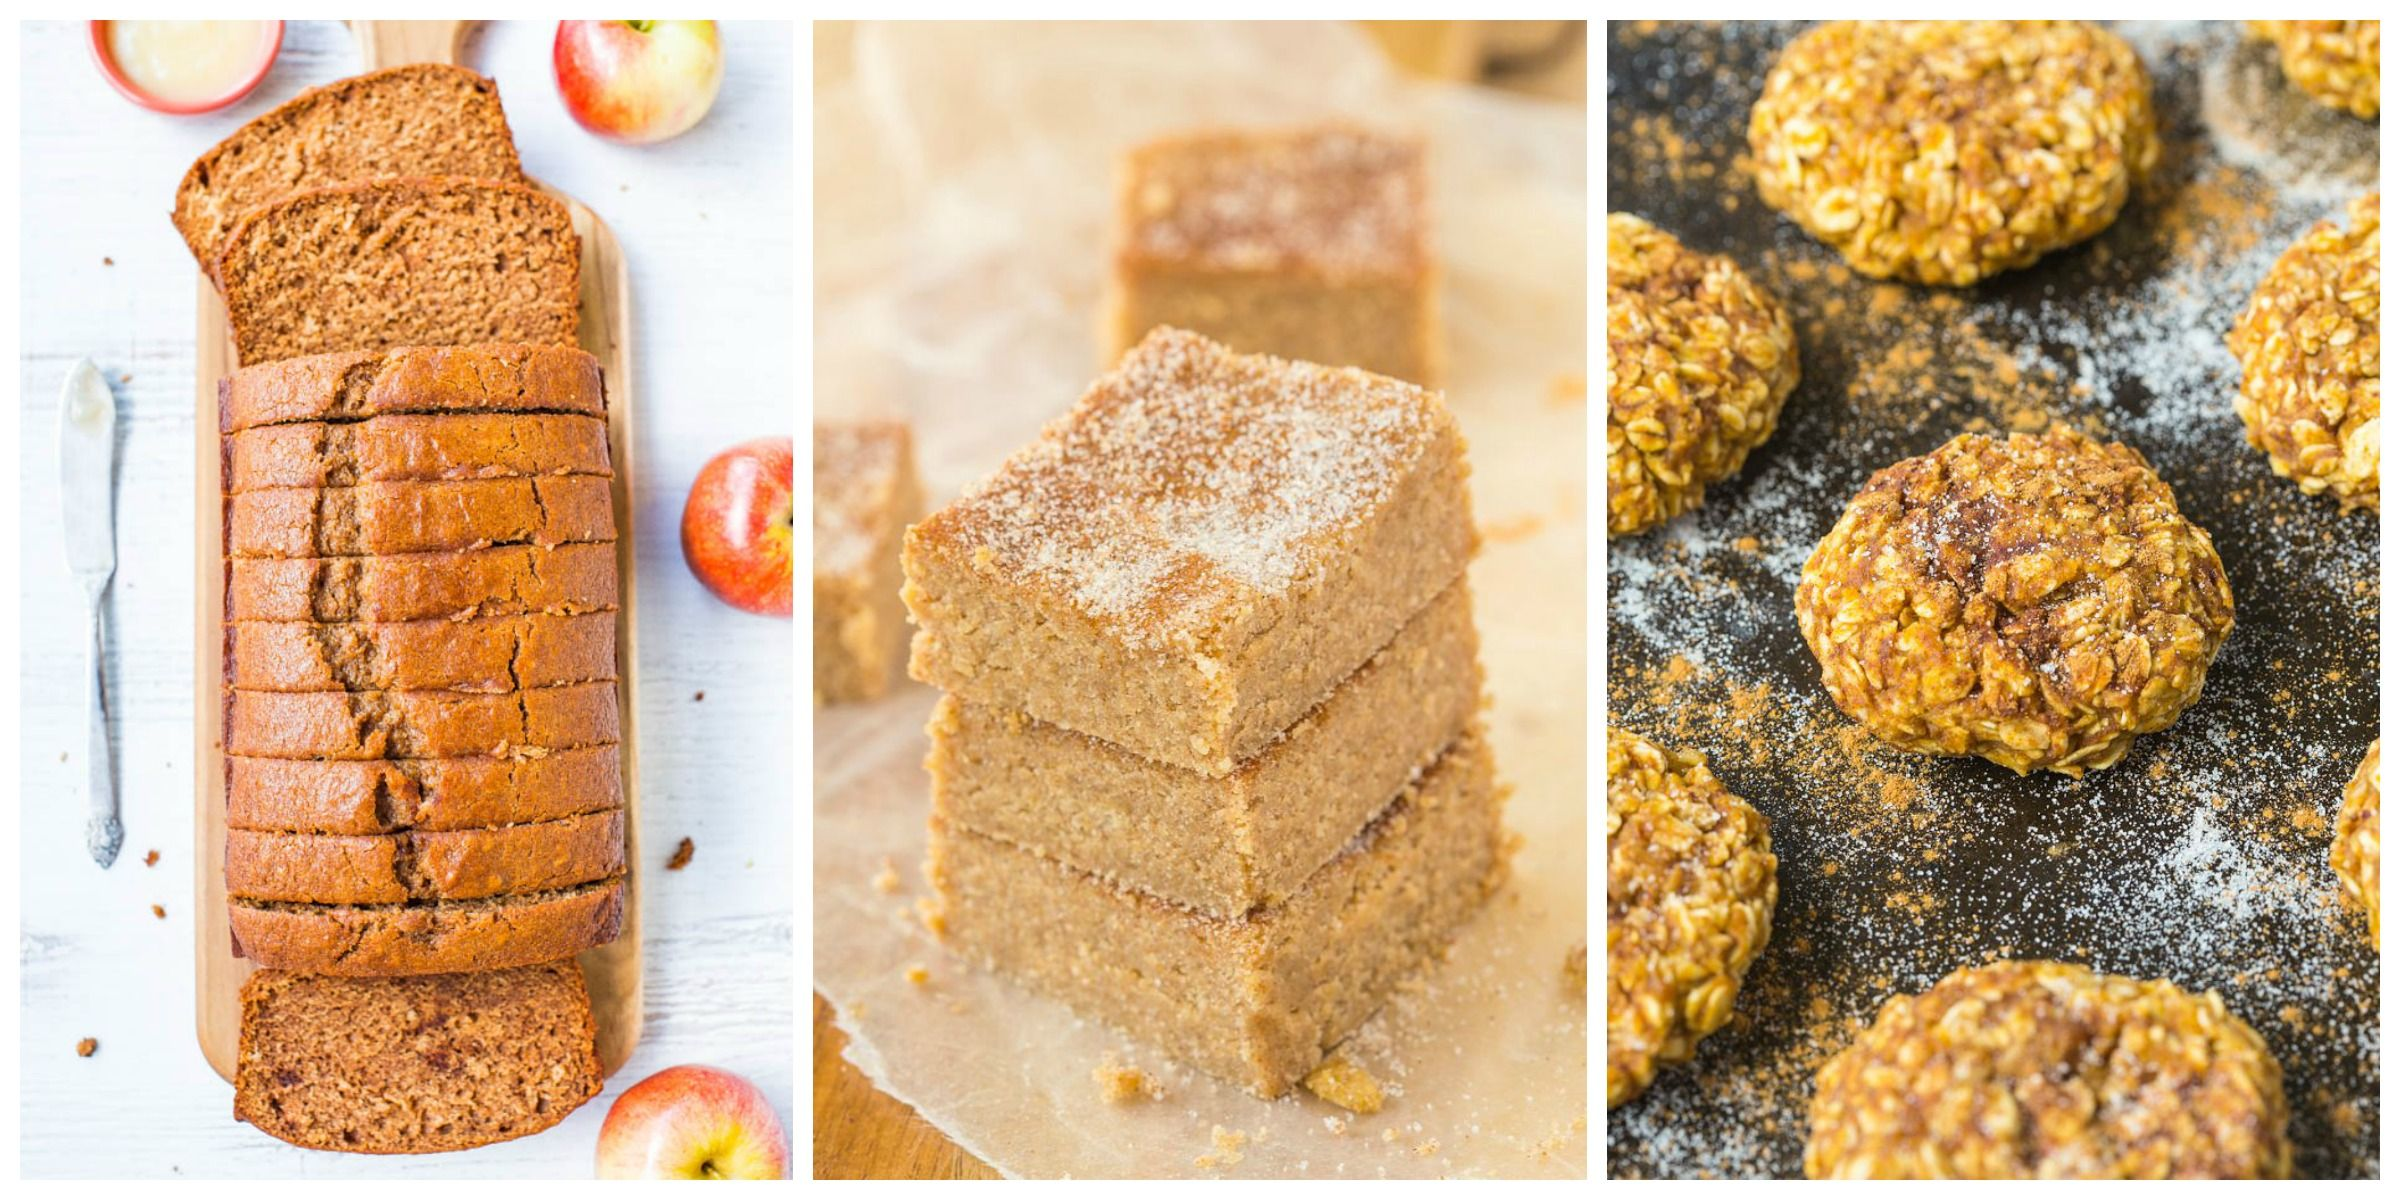 Healthy recipes made with applesauce